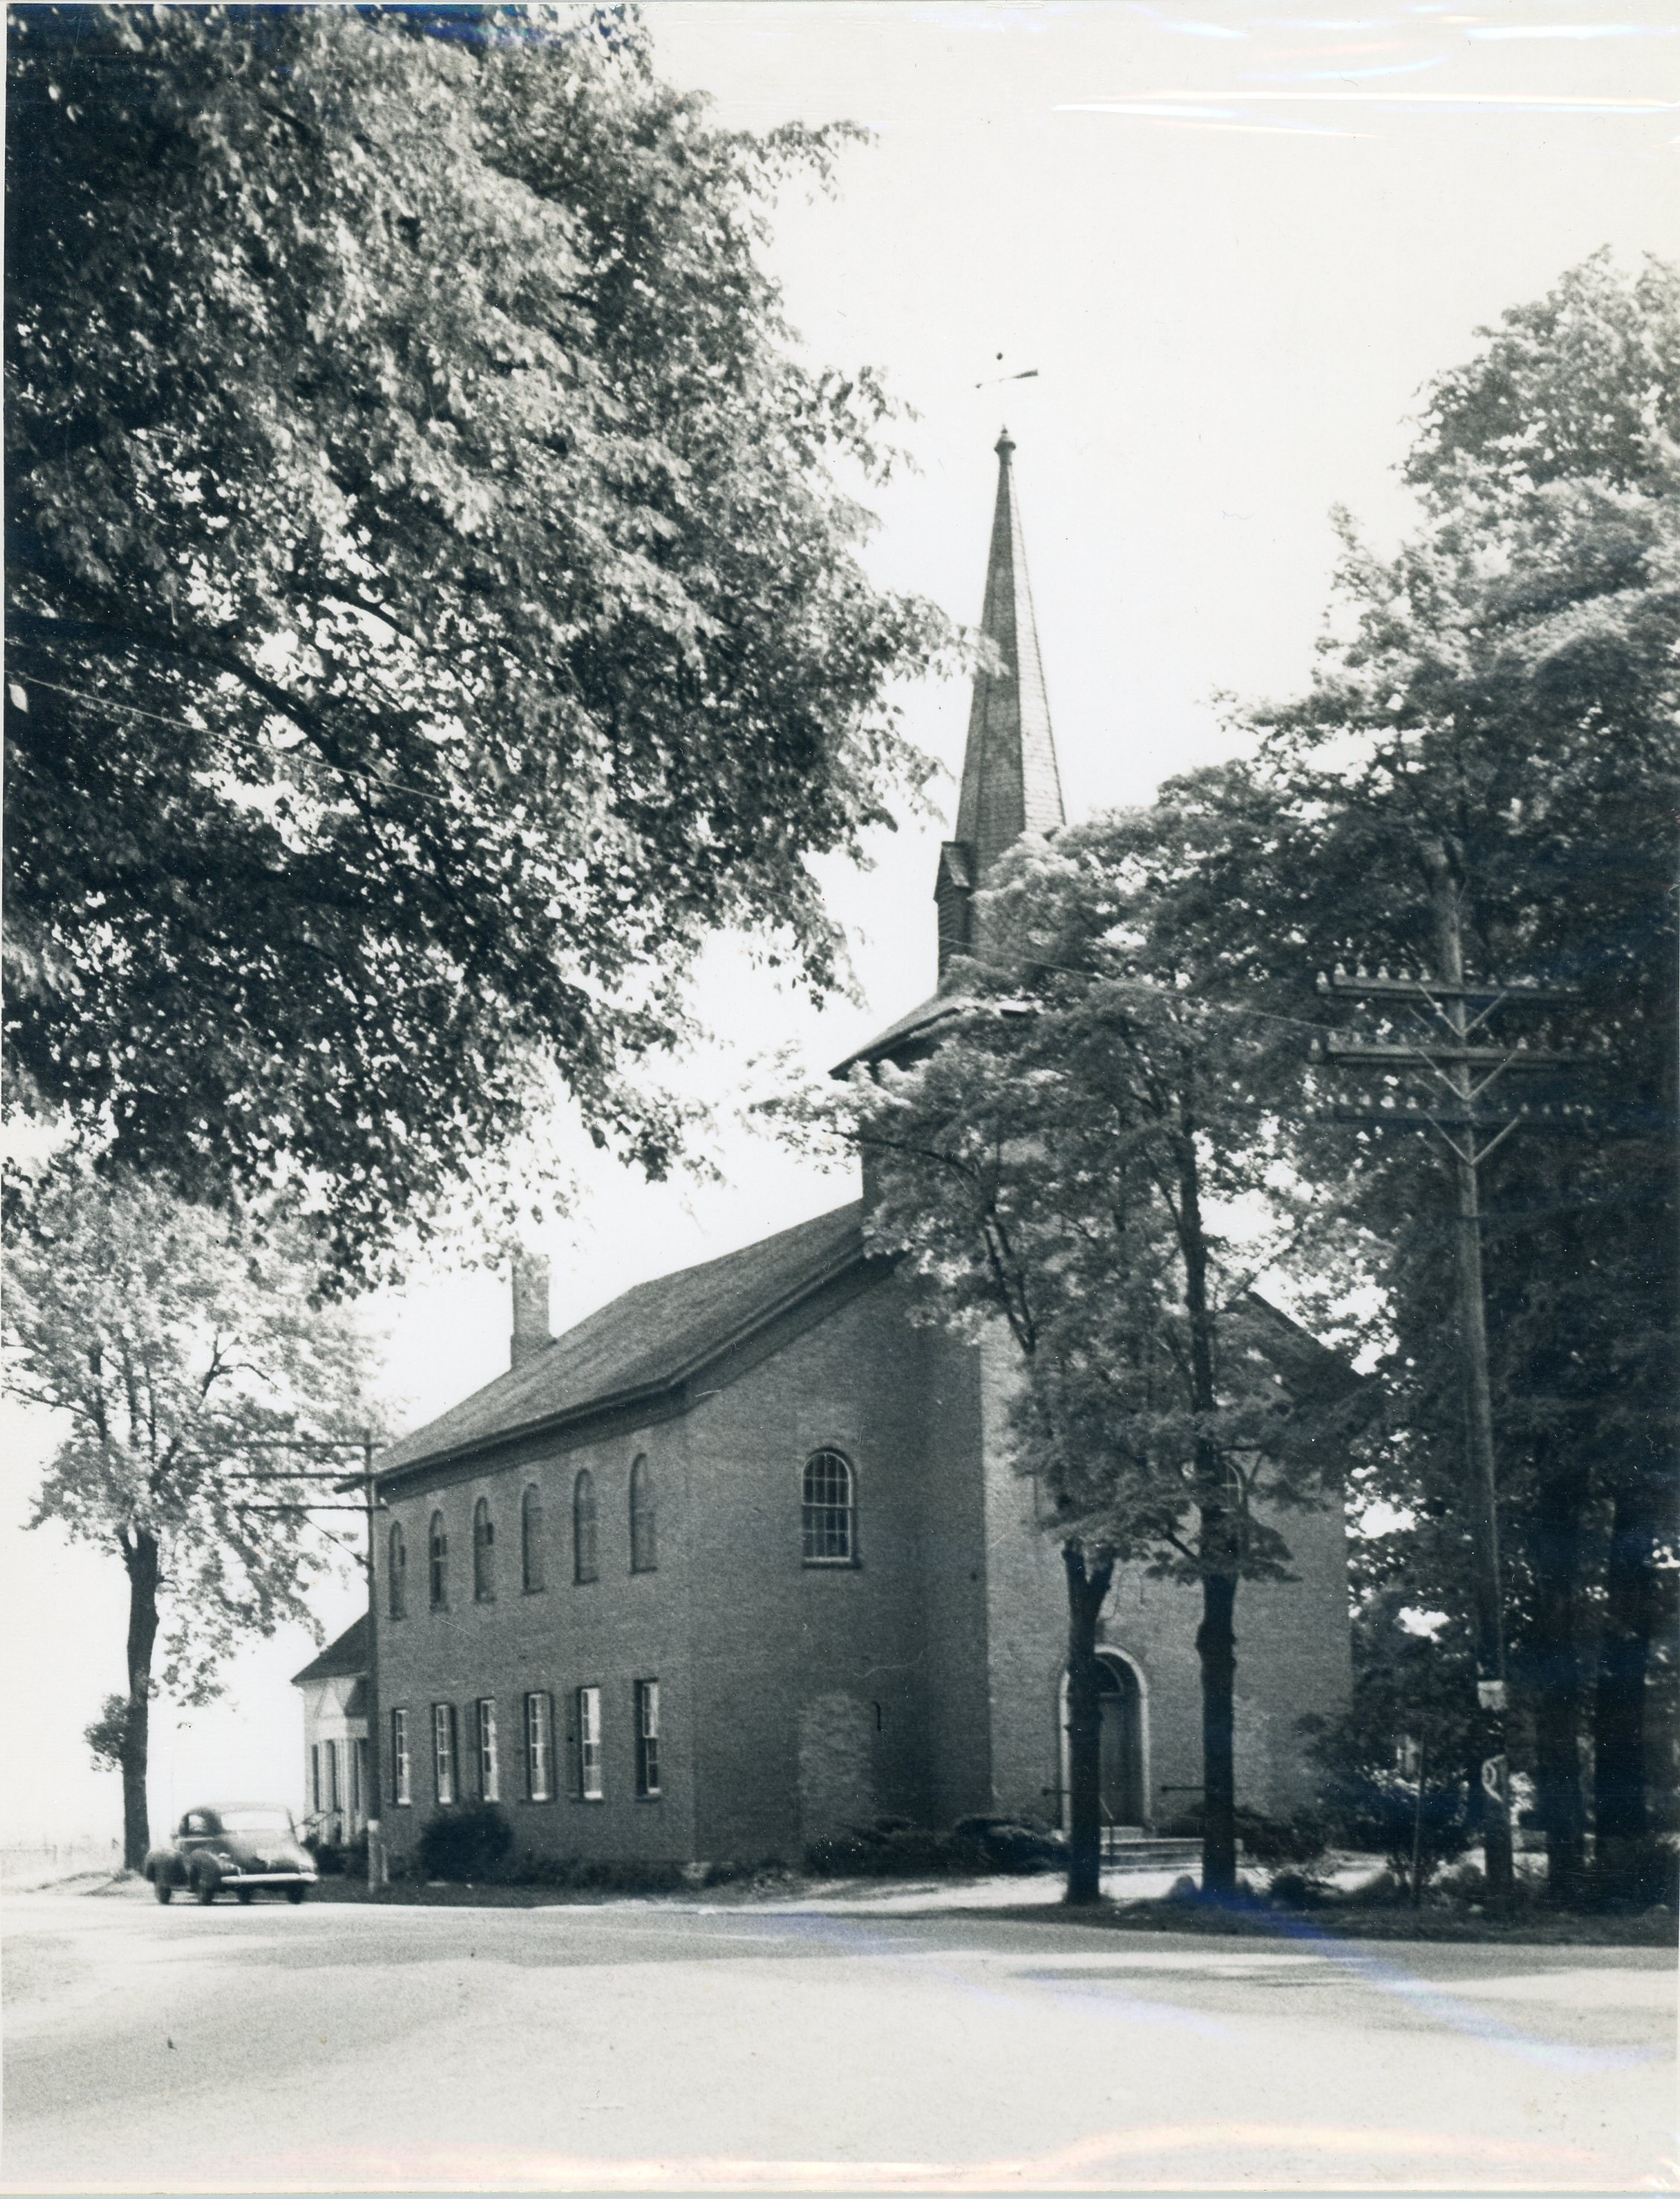 Image of brick First Presbyterian Church in East Avon